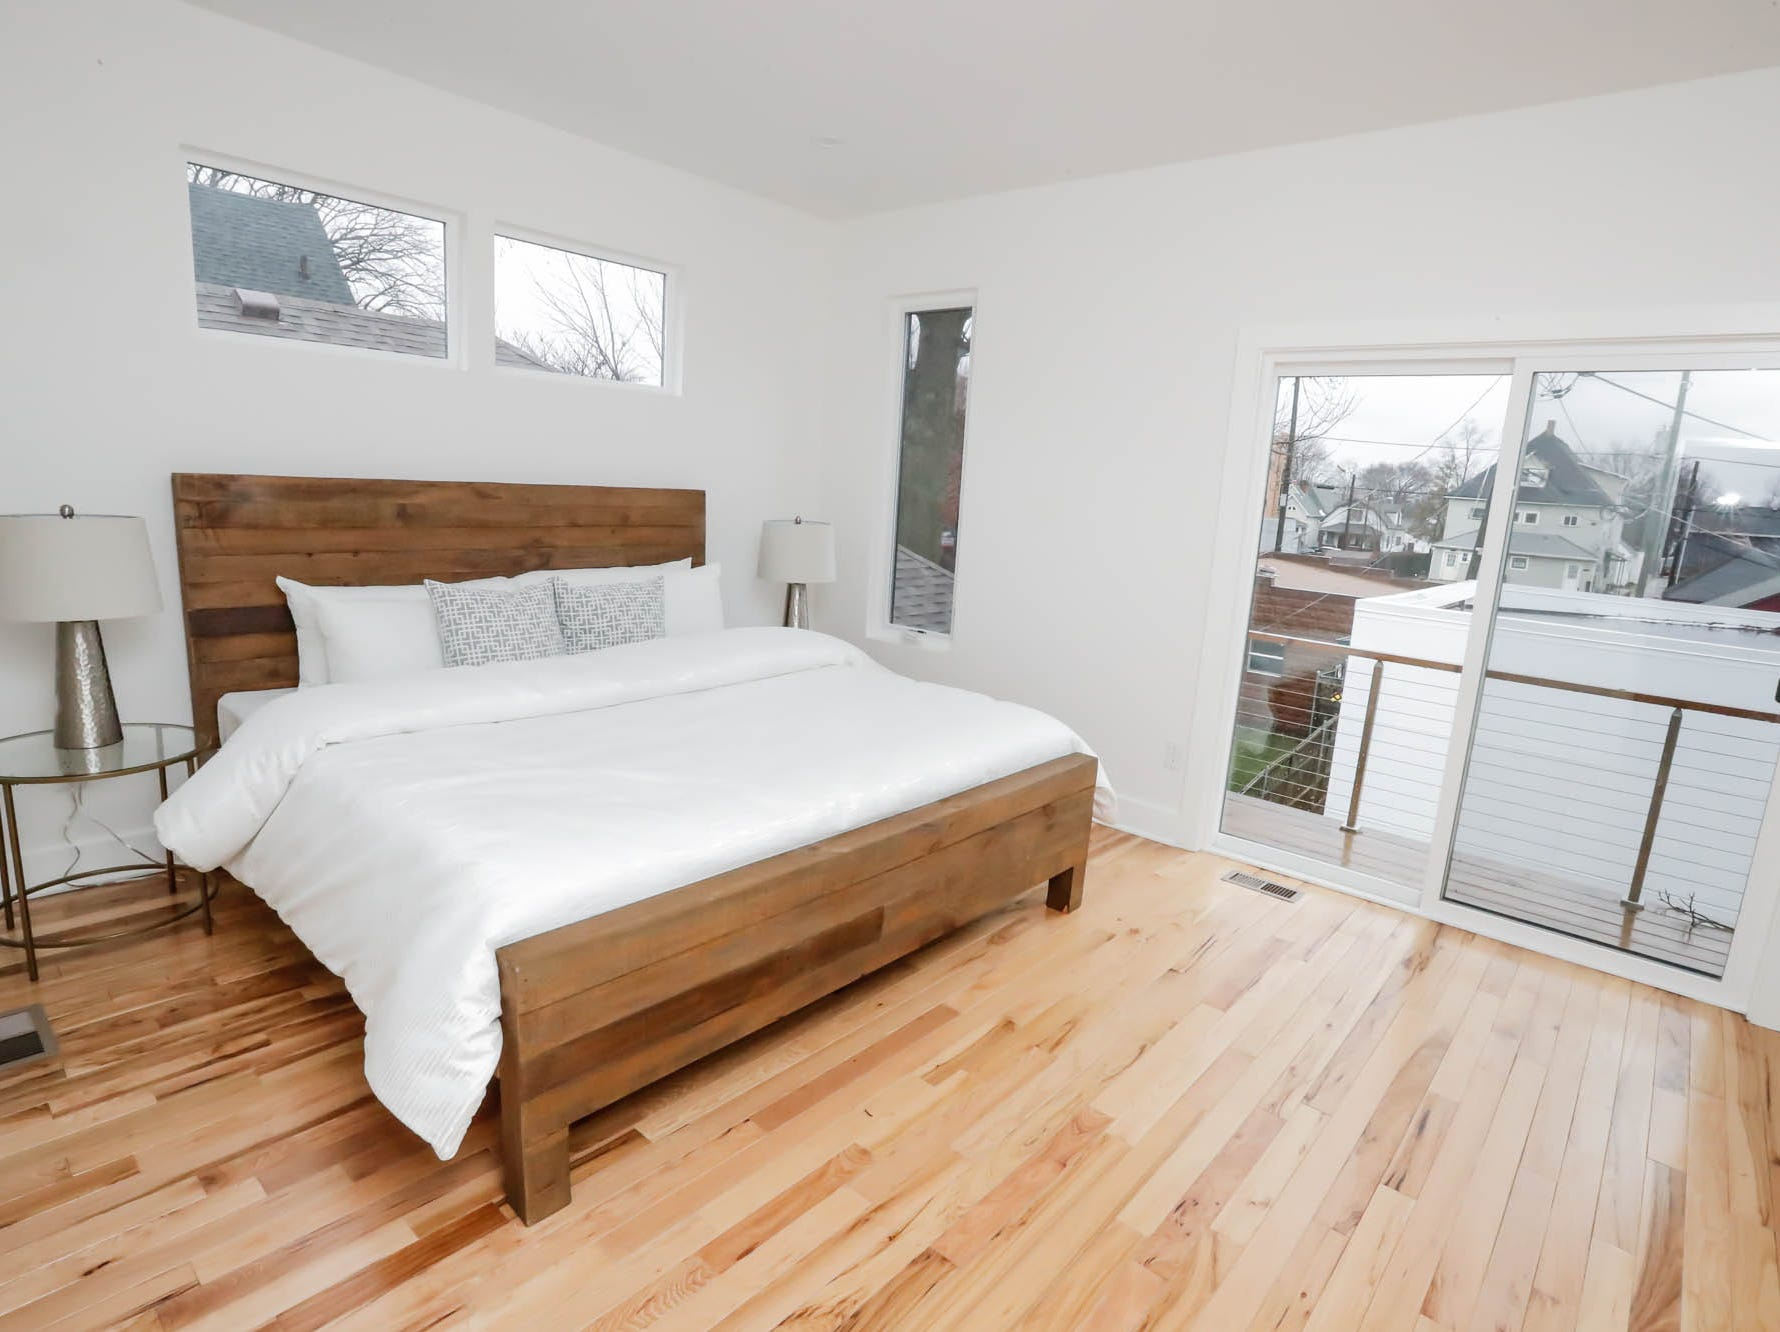 A second-floor master bedroom with attached bath features a walk out back porch at a newly built modern architectural home up for sale at 1134 Woodlawn Ave., Indianapolis, Ind., 46203, in the heart of the historic Fountain Square neighborhood on Wednesday, January 23, 2019. The three-story home, which features 2,030-square-feet and an open space concept tile and hardwood floors are priced at $479,900.